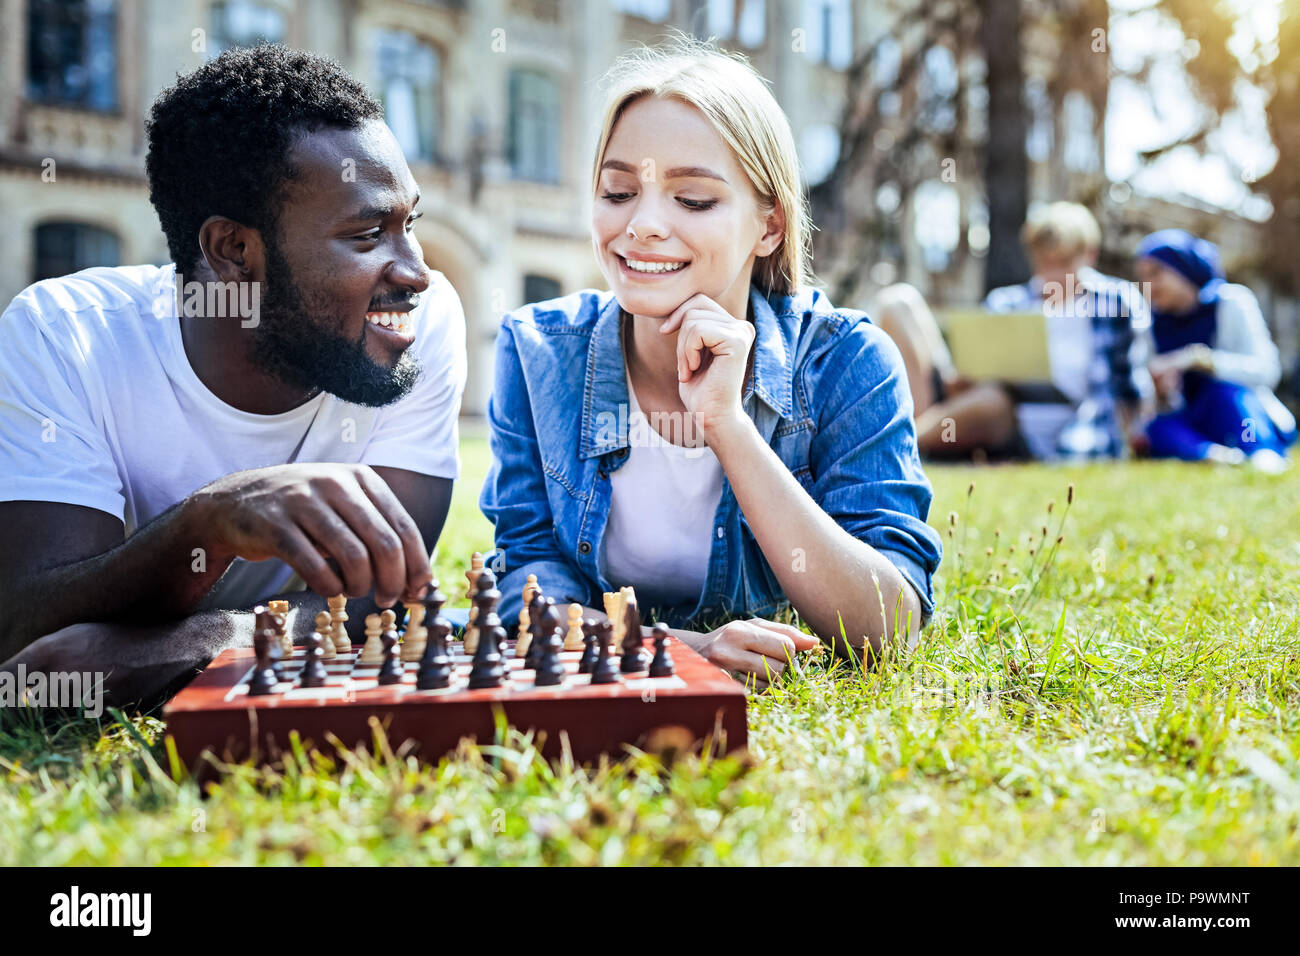 Relaxed friends enjoying chess game together - Stock Image